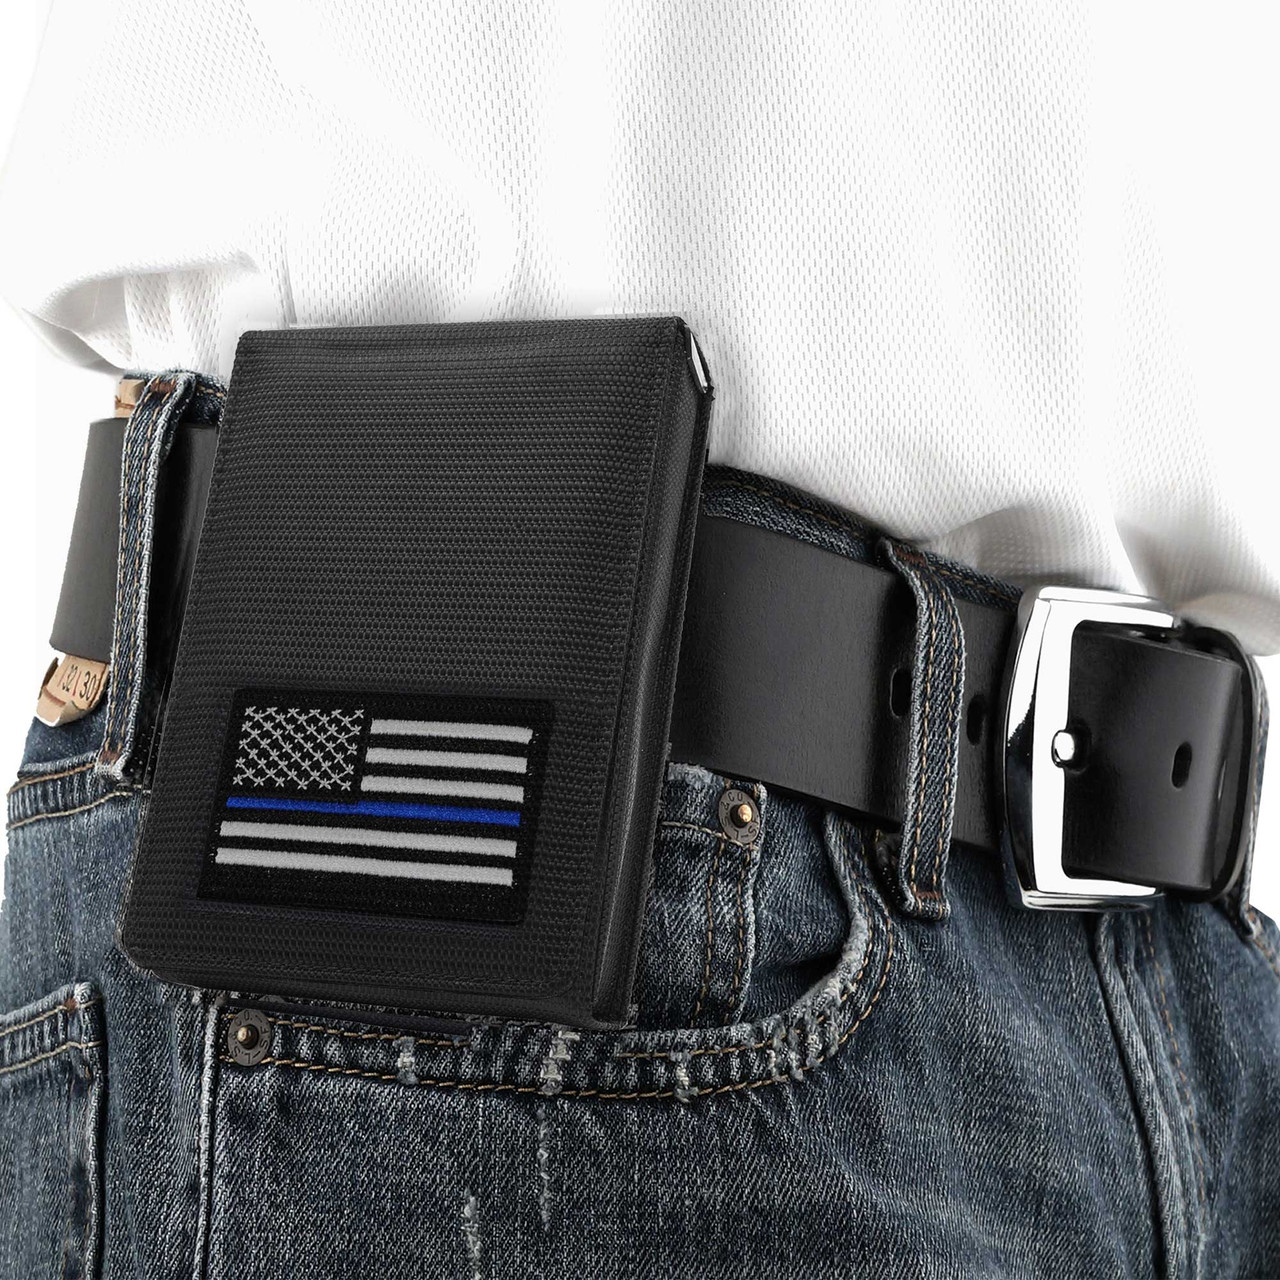 Springfield XDE 9mm Thin Blue Line Holster